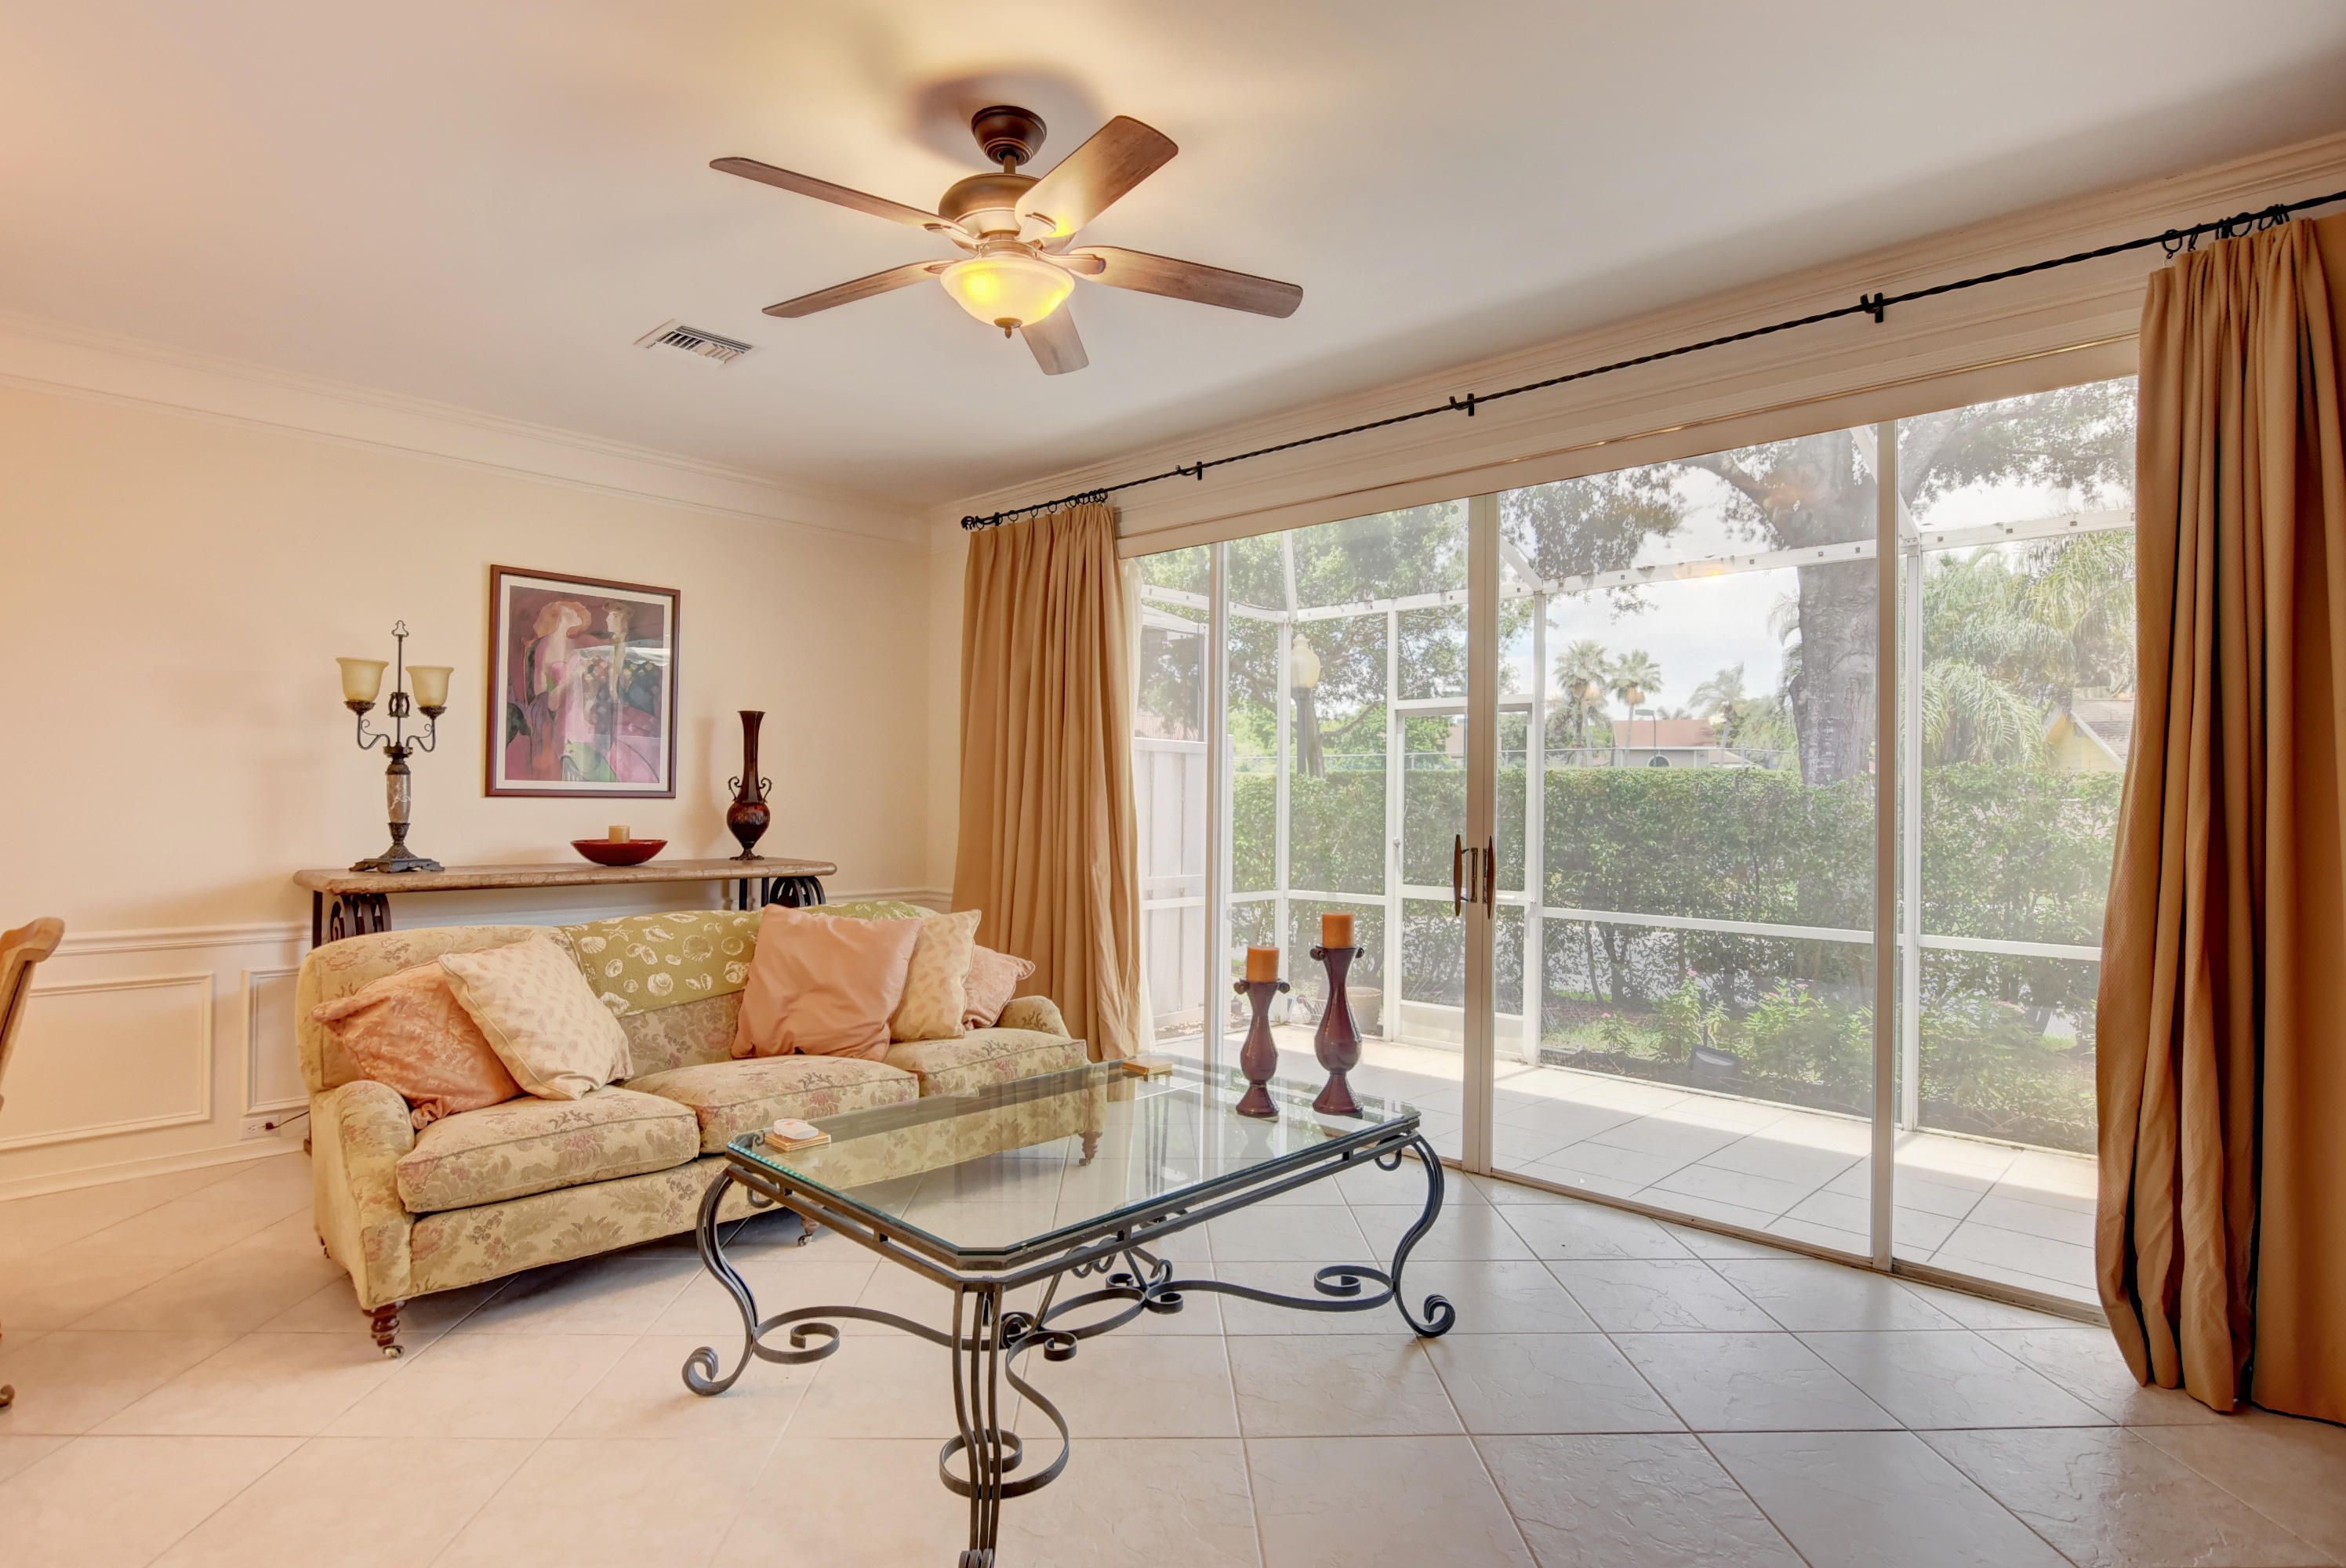 5399 Grand Park Place, Boca Raton, Florida 33486, 2 Bedrooms Bedrooms, ,2.1 BathroomsBathrooms,Townhouse,For Sale,FAIRFIELD AT BOCA. GRAND FAIRFIELD,Grand Park,RX-10440633